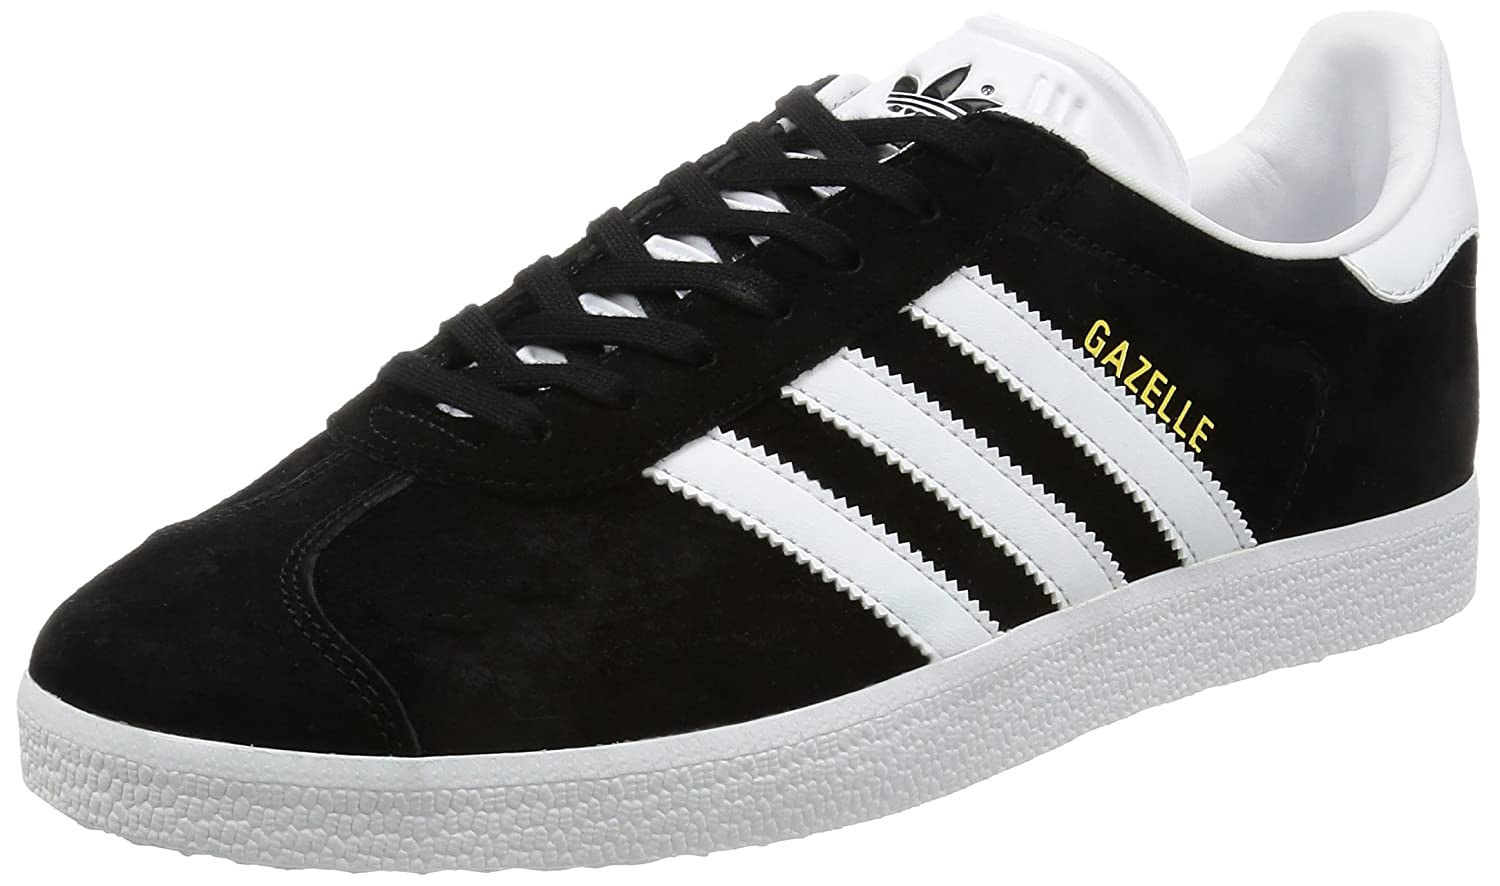 TALLA 48 EU. adidas Originals Gazelle, Zapatillas Casual Unisex Adulto